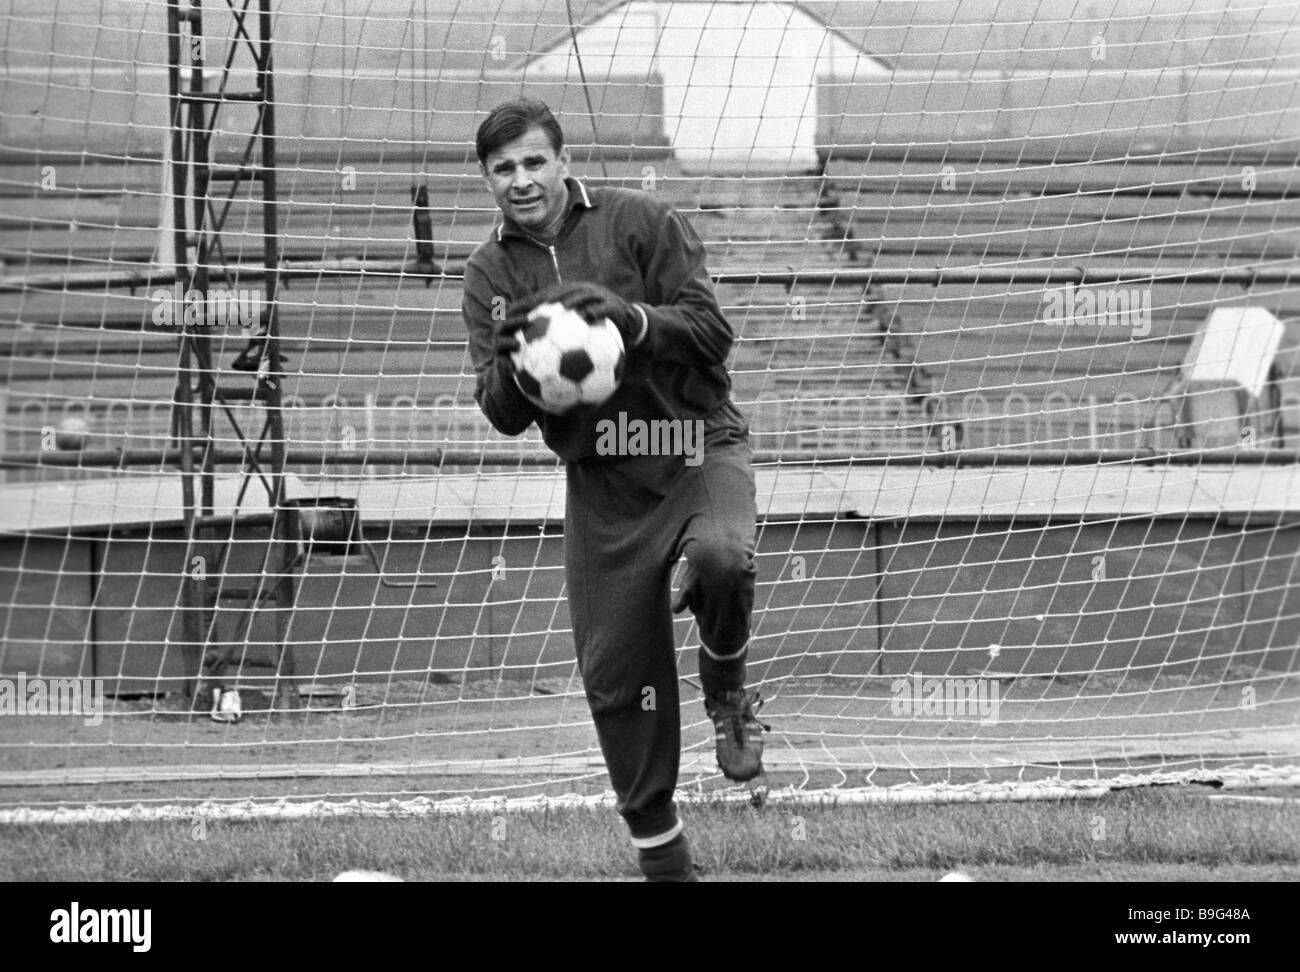 Moscow FC Dynamo goalkeeper Lev Yashin training Stock